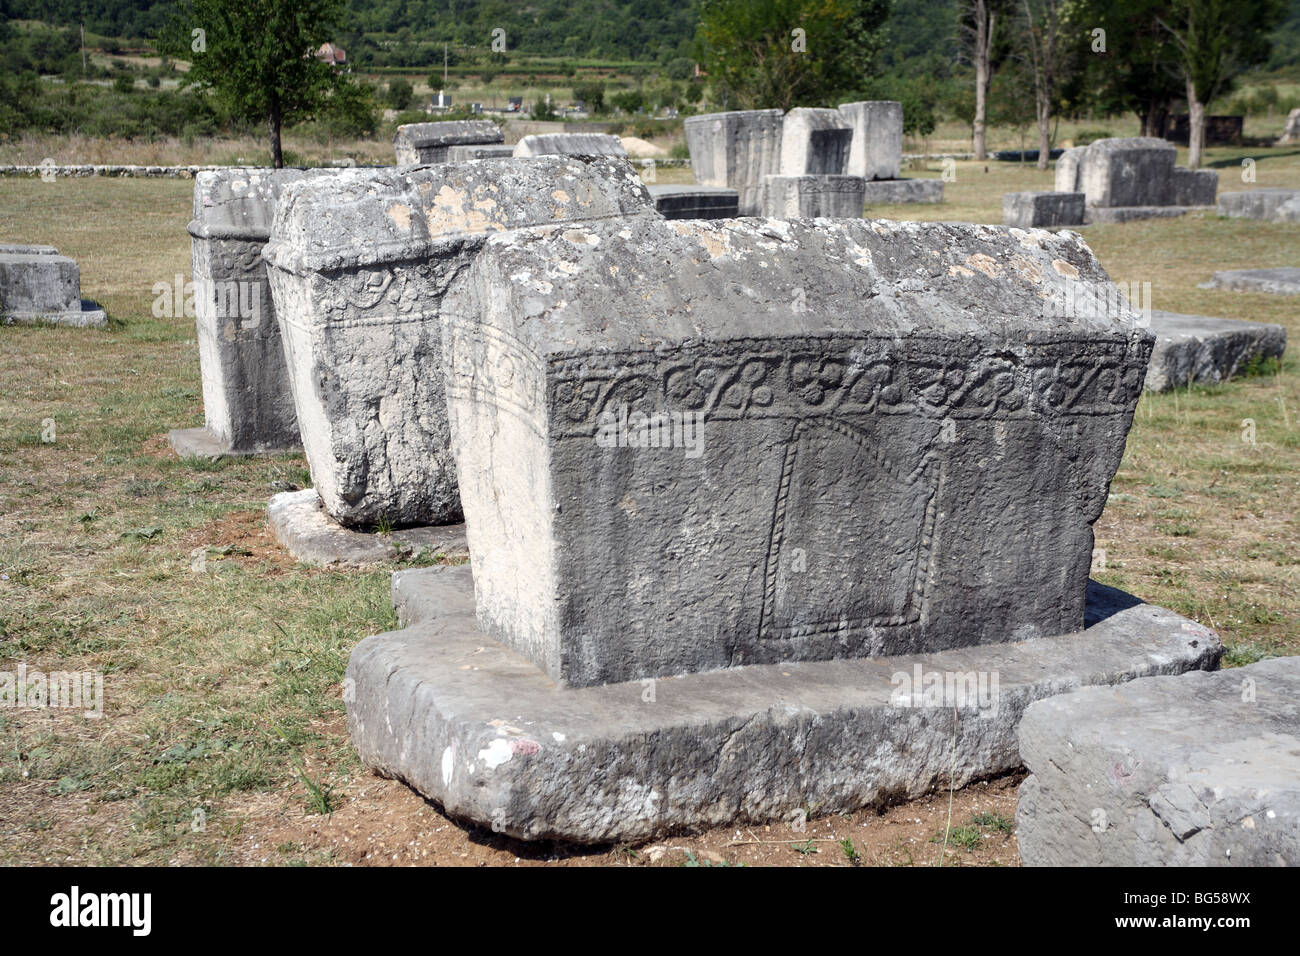 Carved tombstones in Bosnian Medieval necropolis - Stock Image